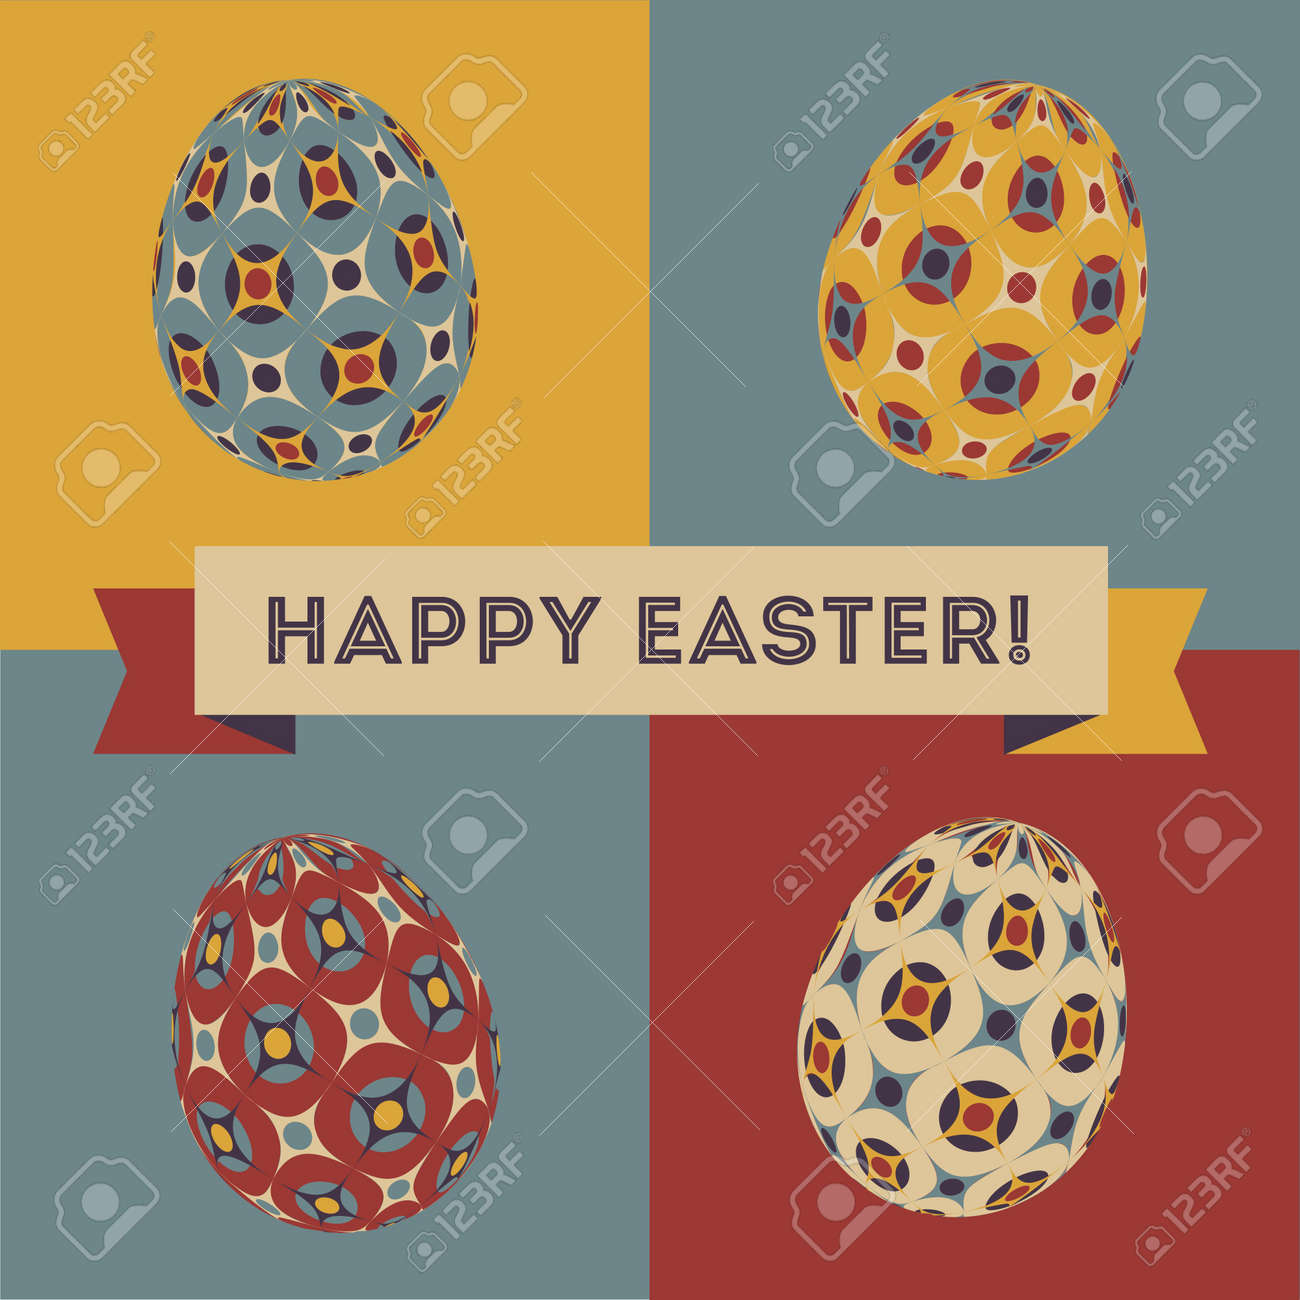 Colorful Easter Card Design With Eggs And Banner Royalty Free – Easter Card Designs